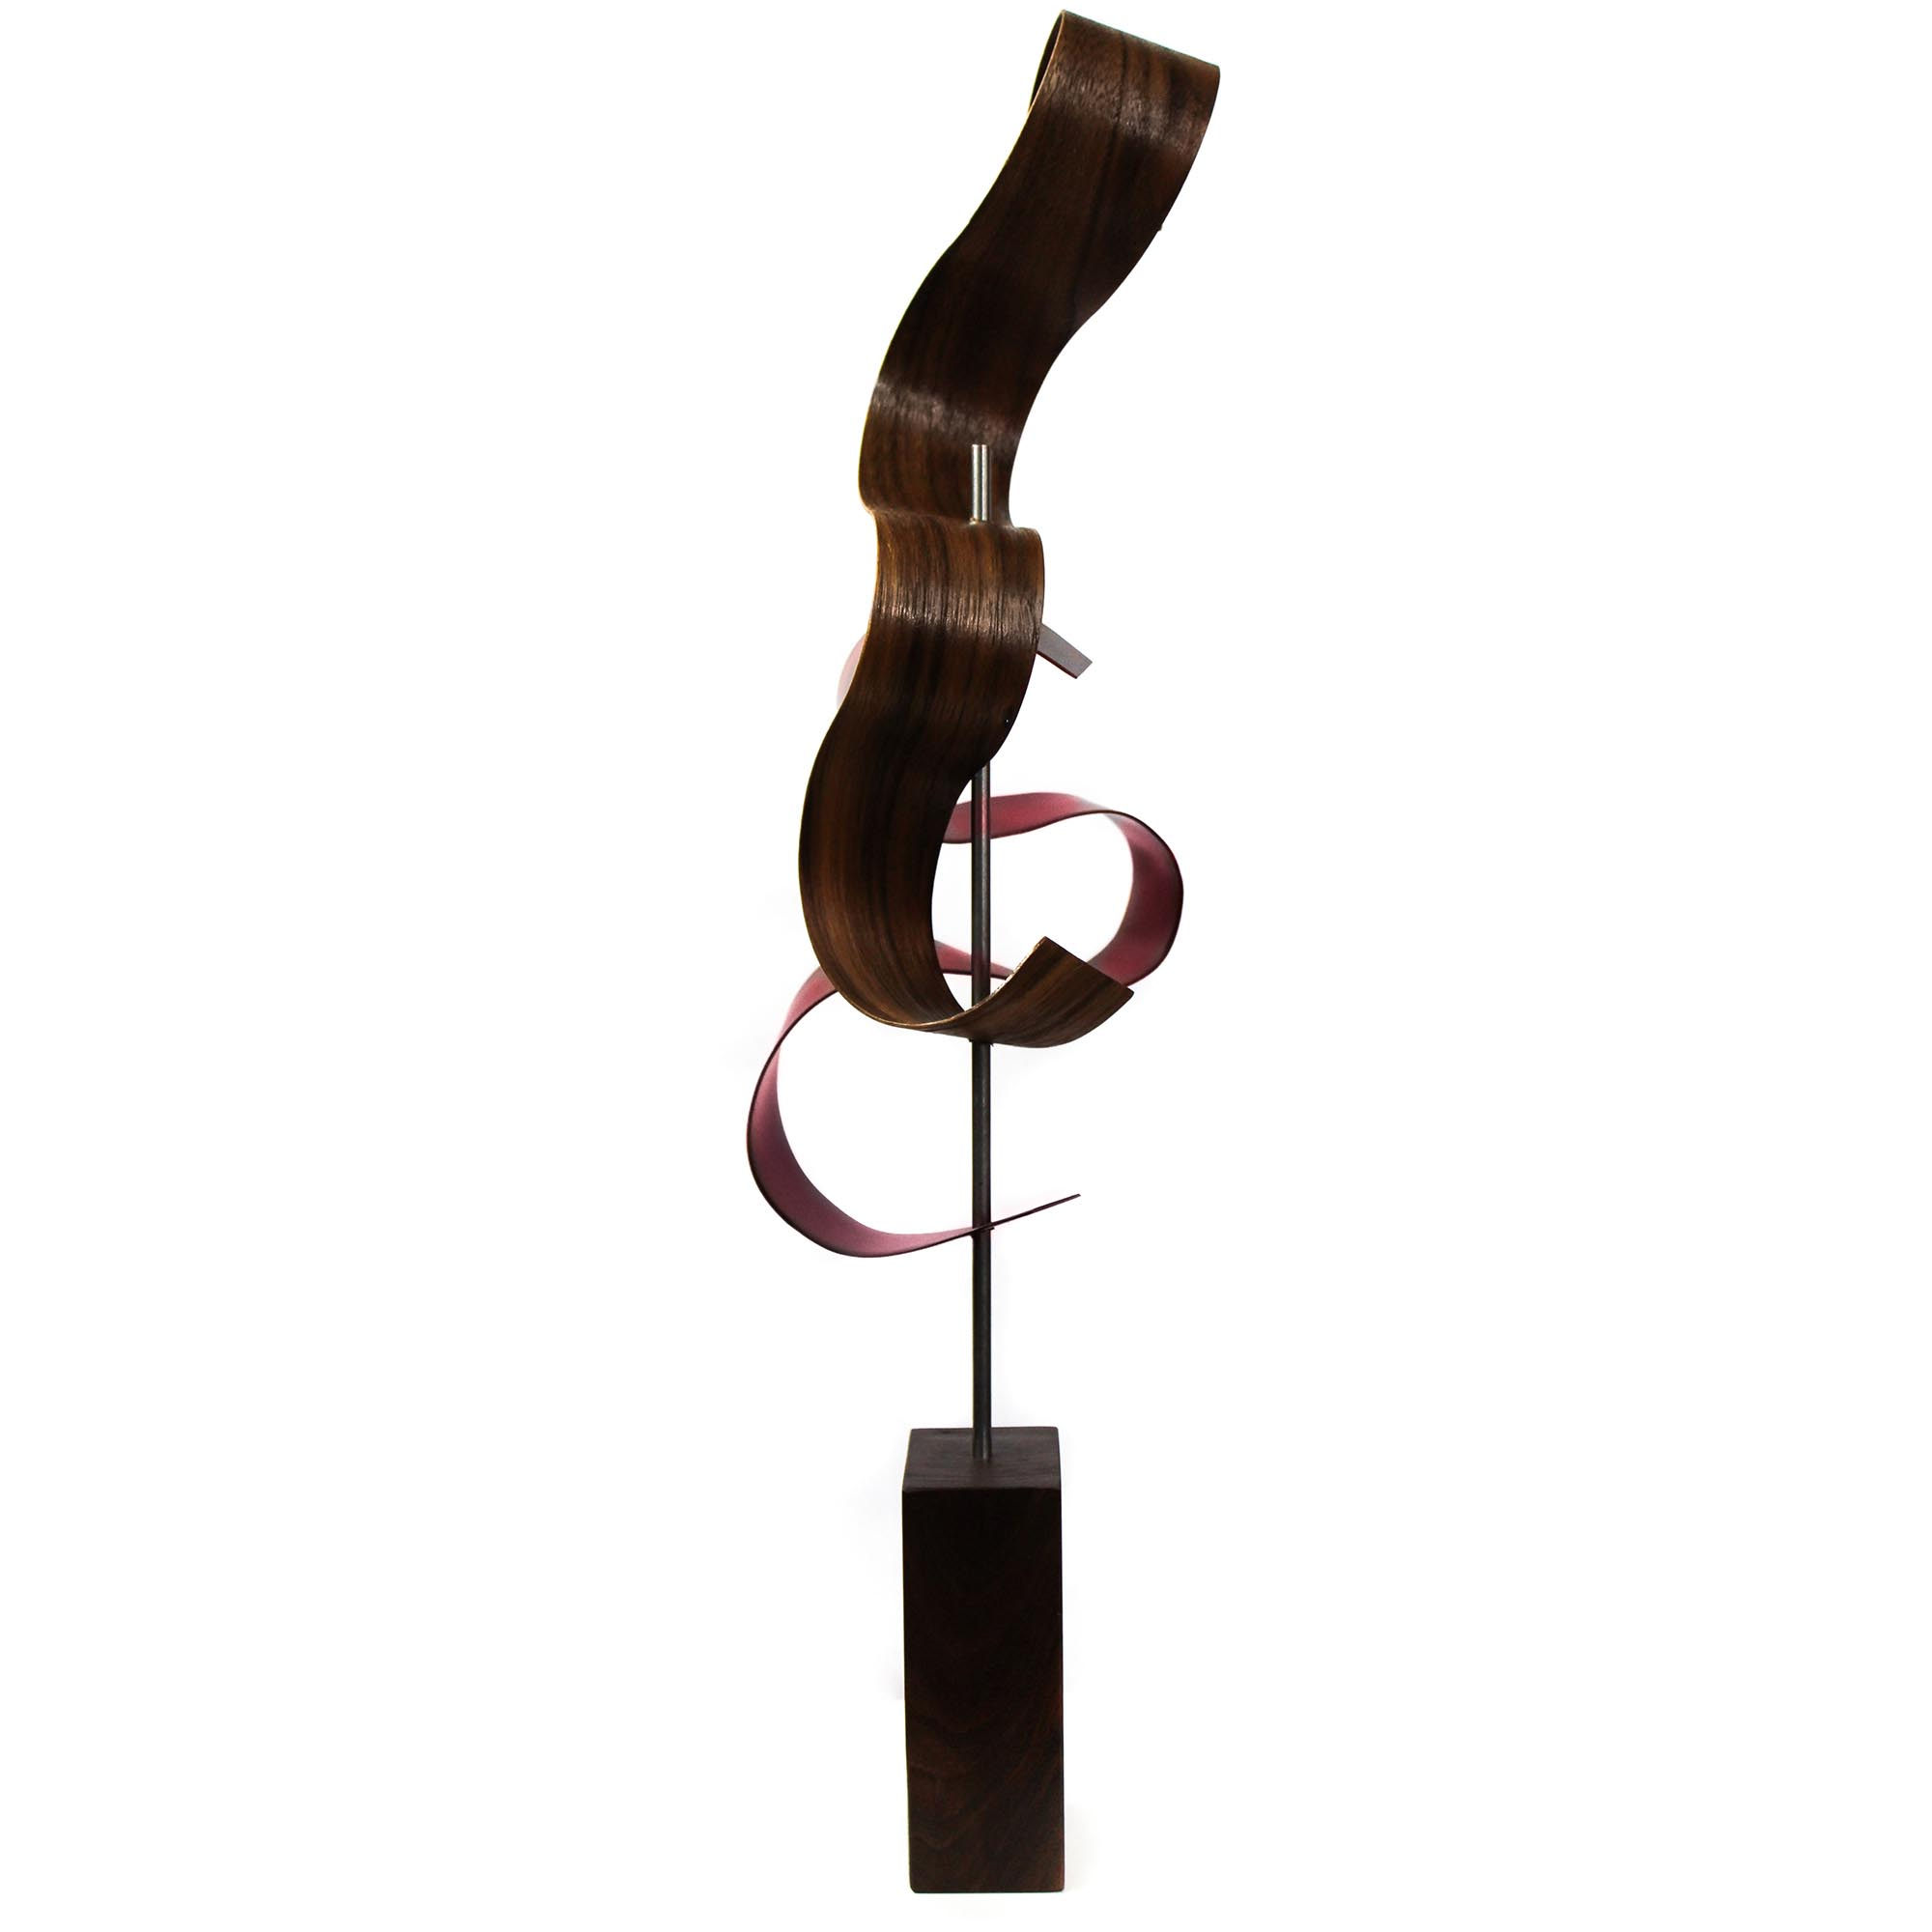 Lava by Jackson Wright - Modern Wood Sculpture, Mid-Century Home Decor - Image 3